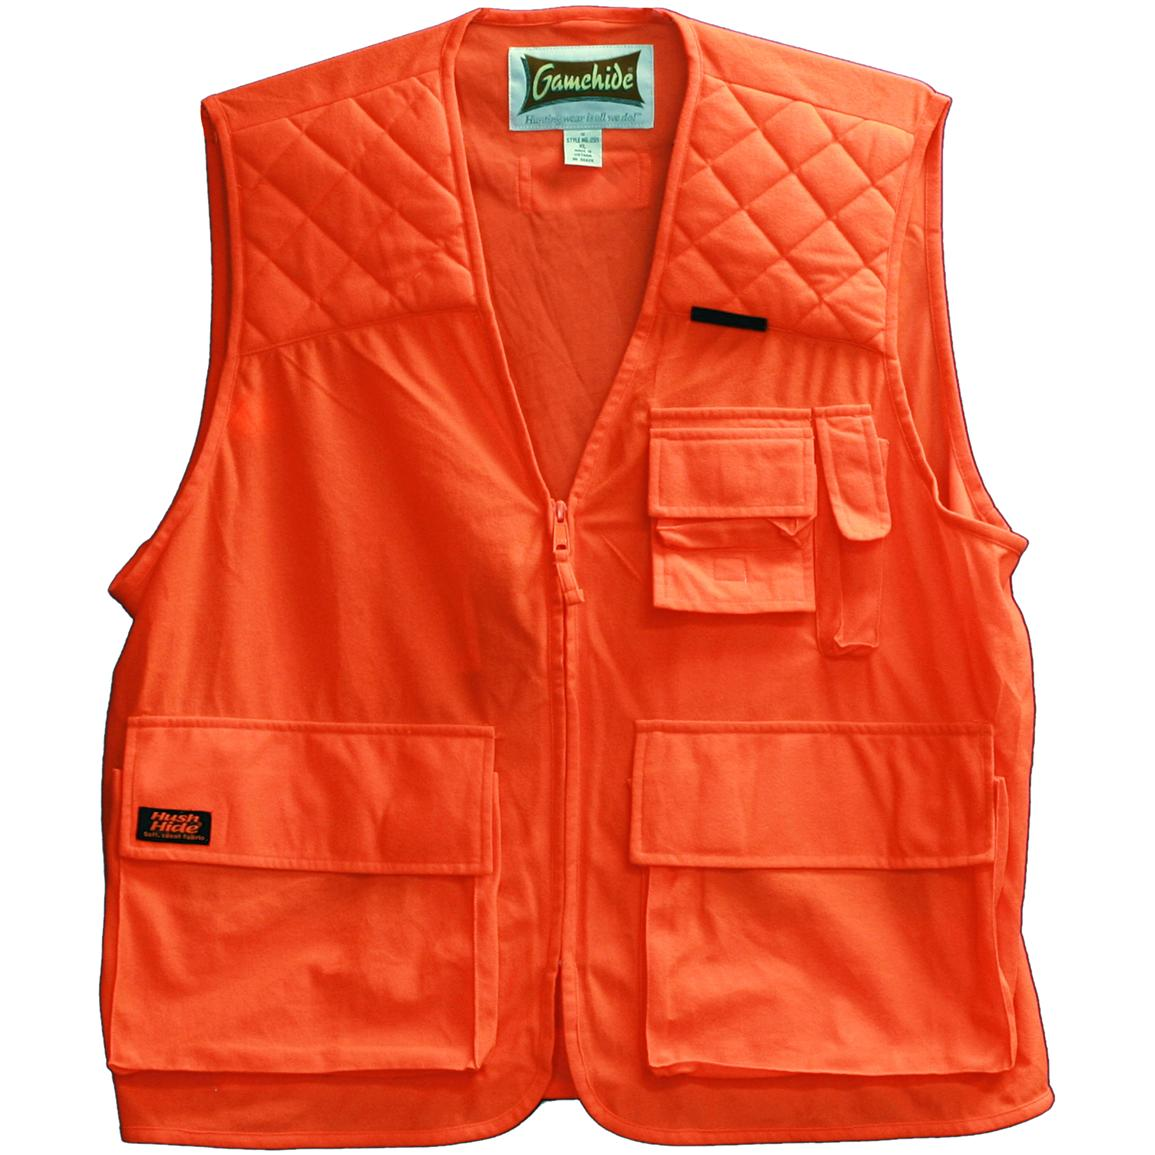 Gamehide® Sneaker Vest, Blaze Orange